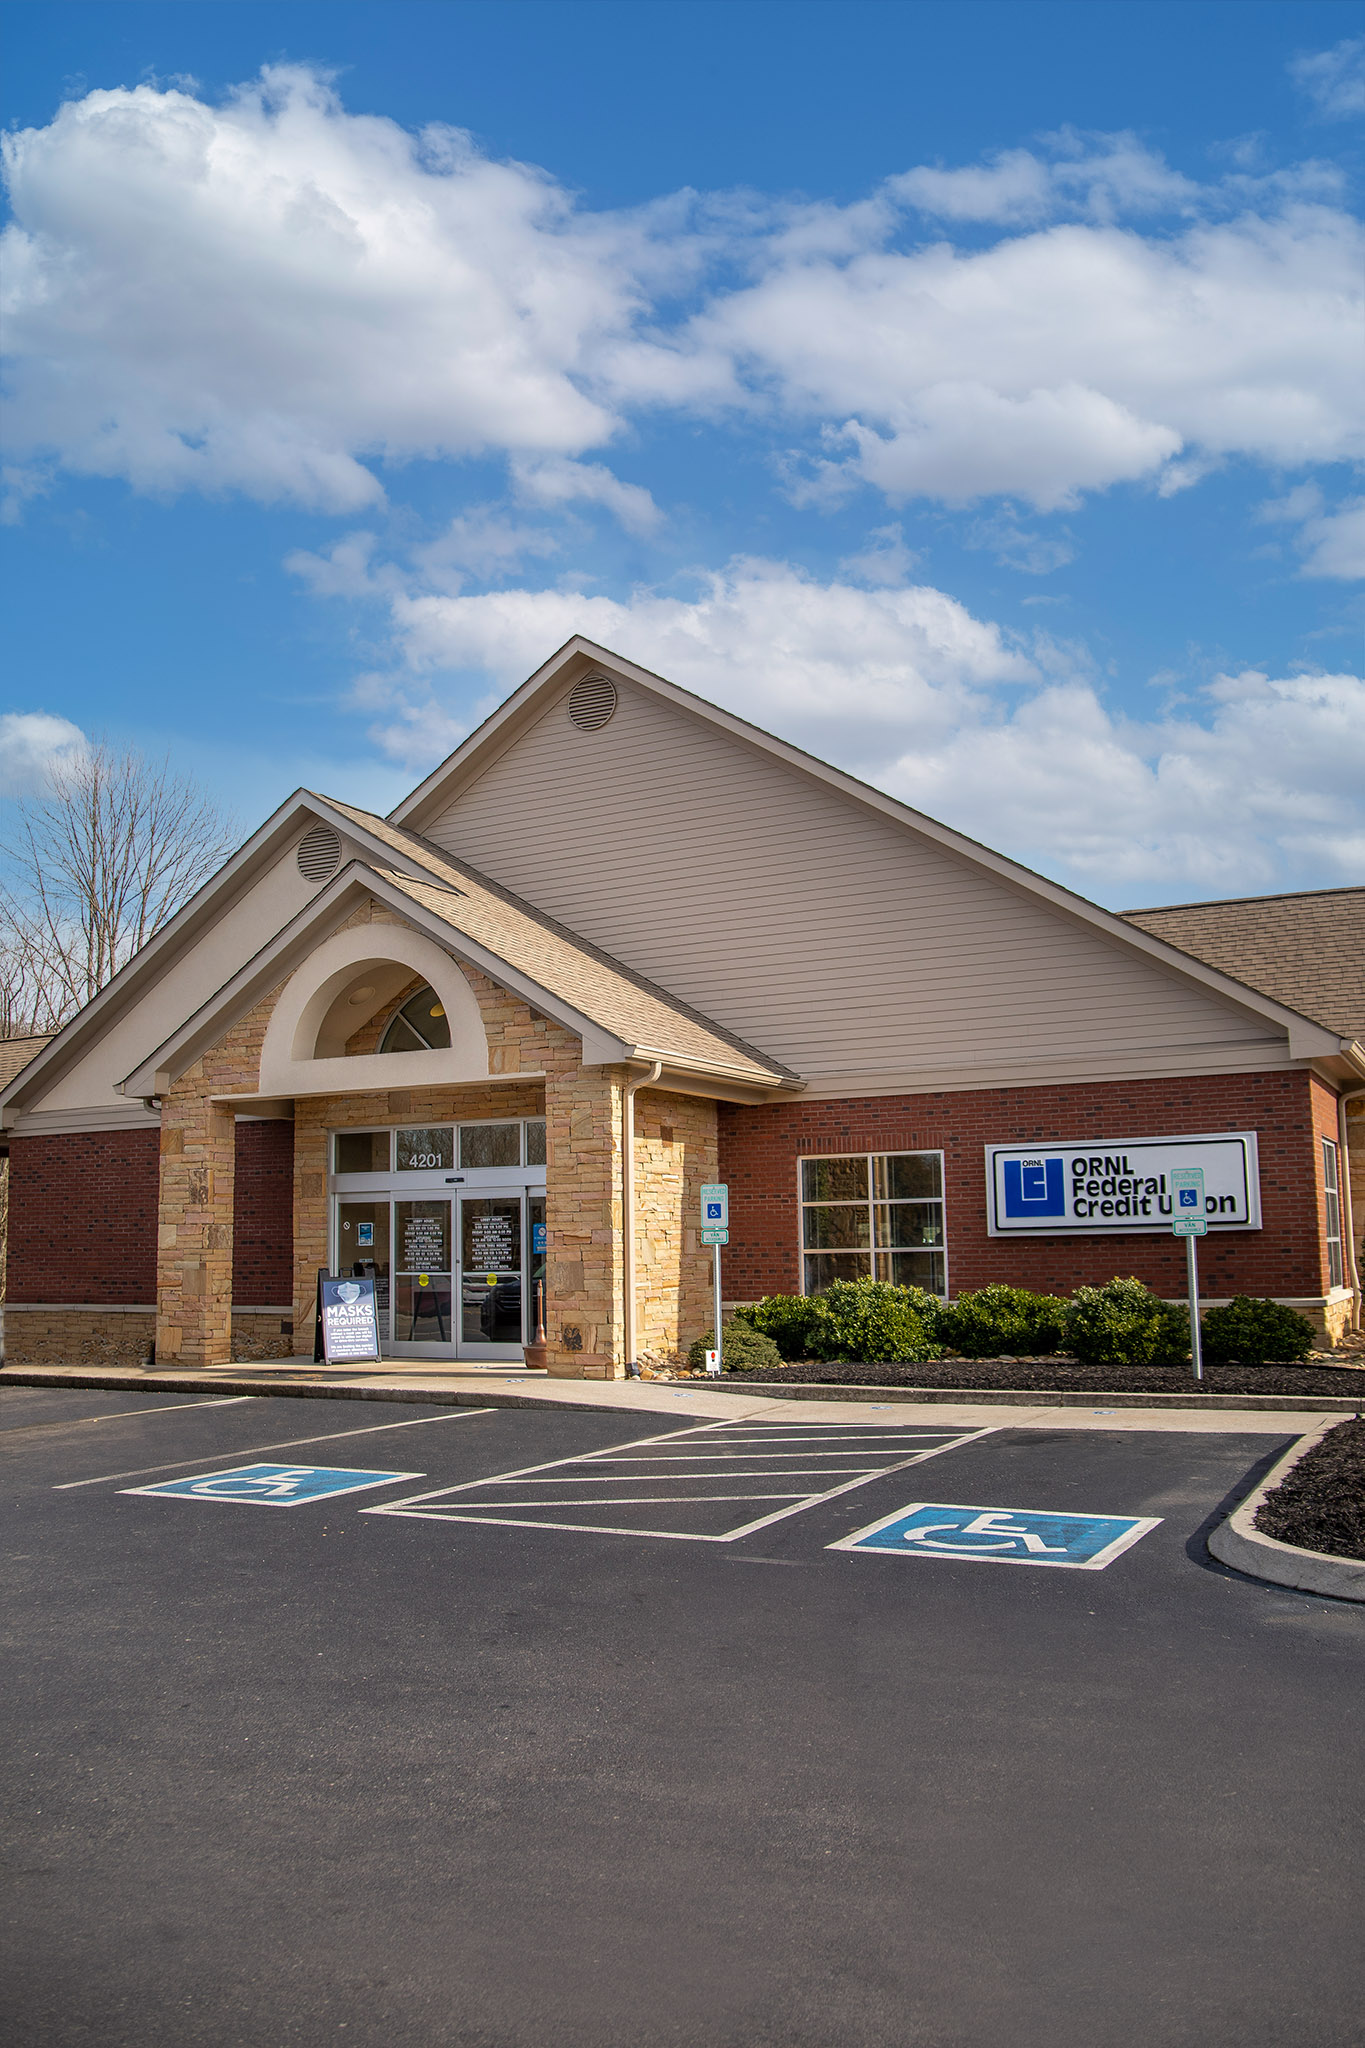 Exterior building of Madisonville branch